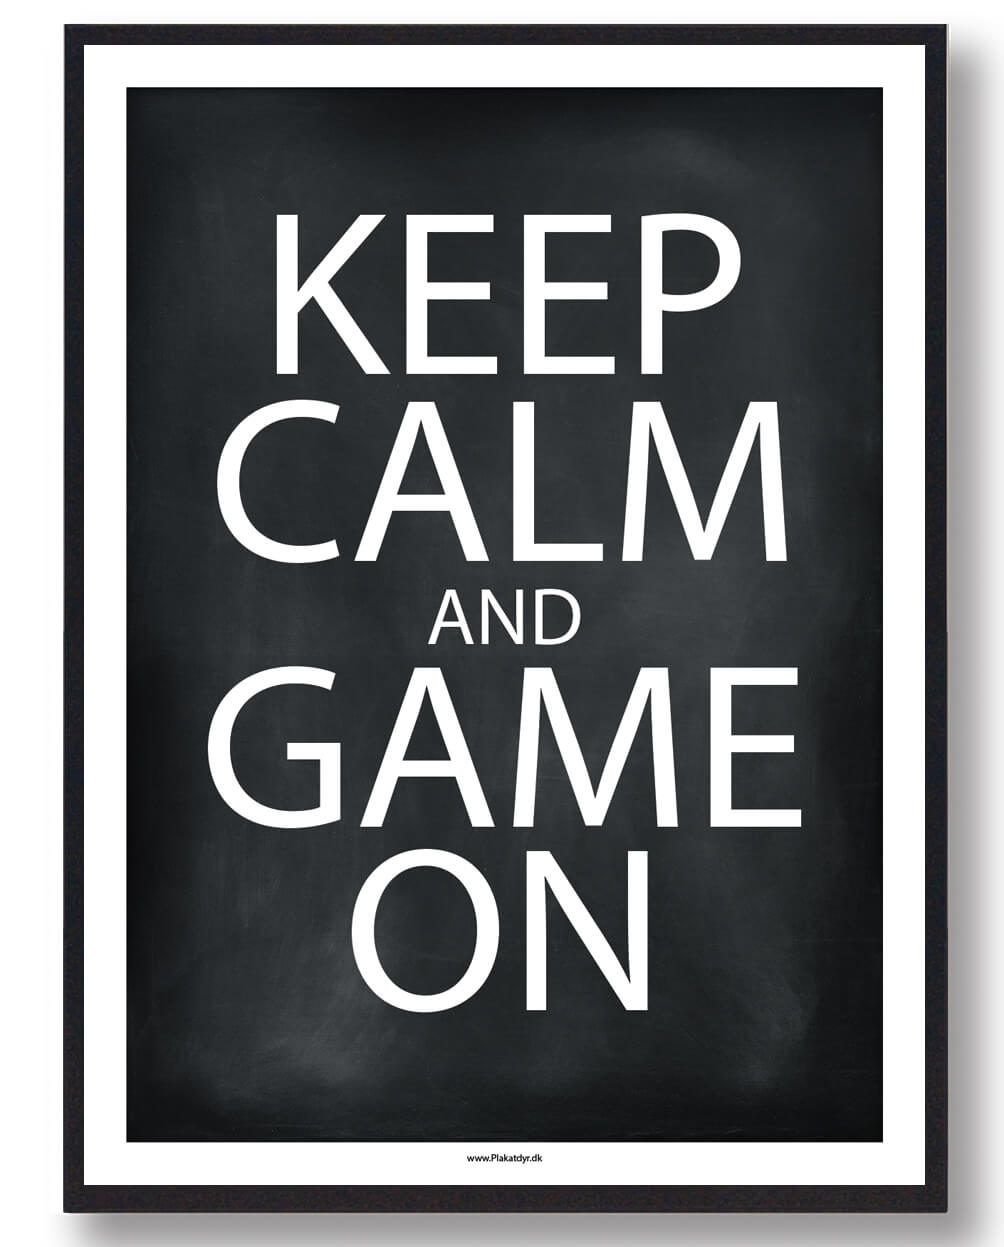 KEEP CALM and GAME ON - gamerplakat (sort)